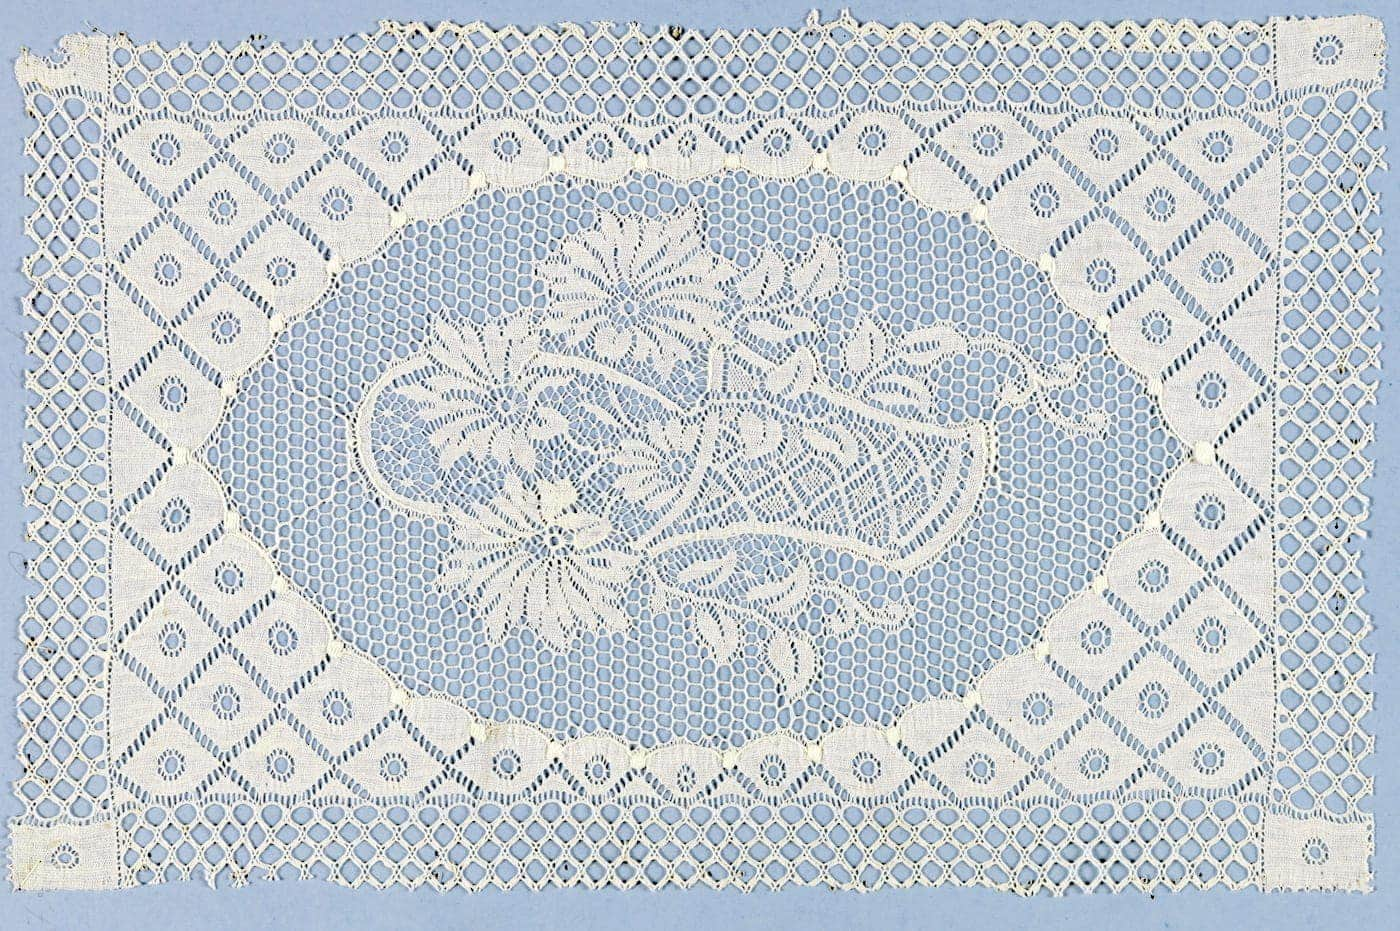 How to take care of lace, the old-fashioned way